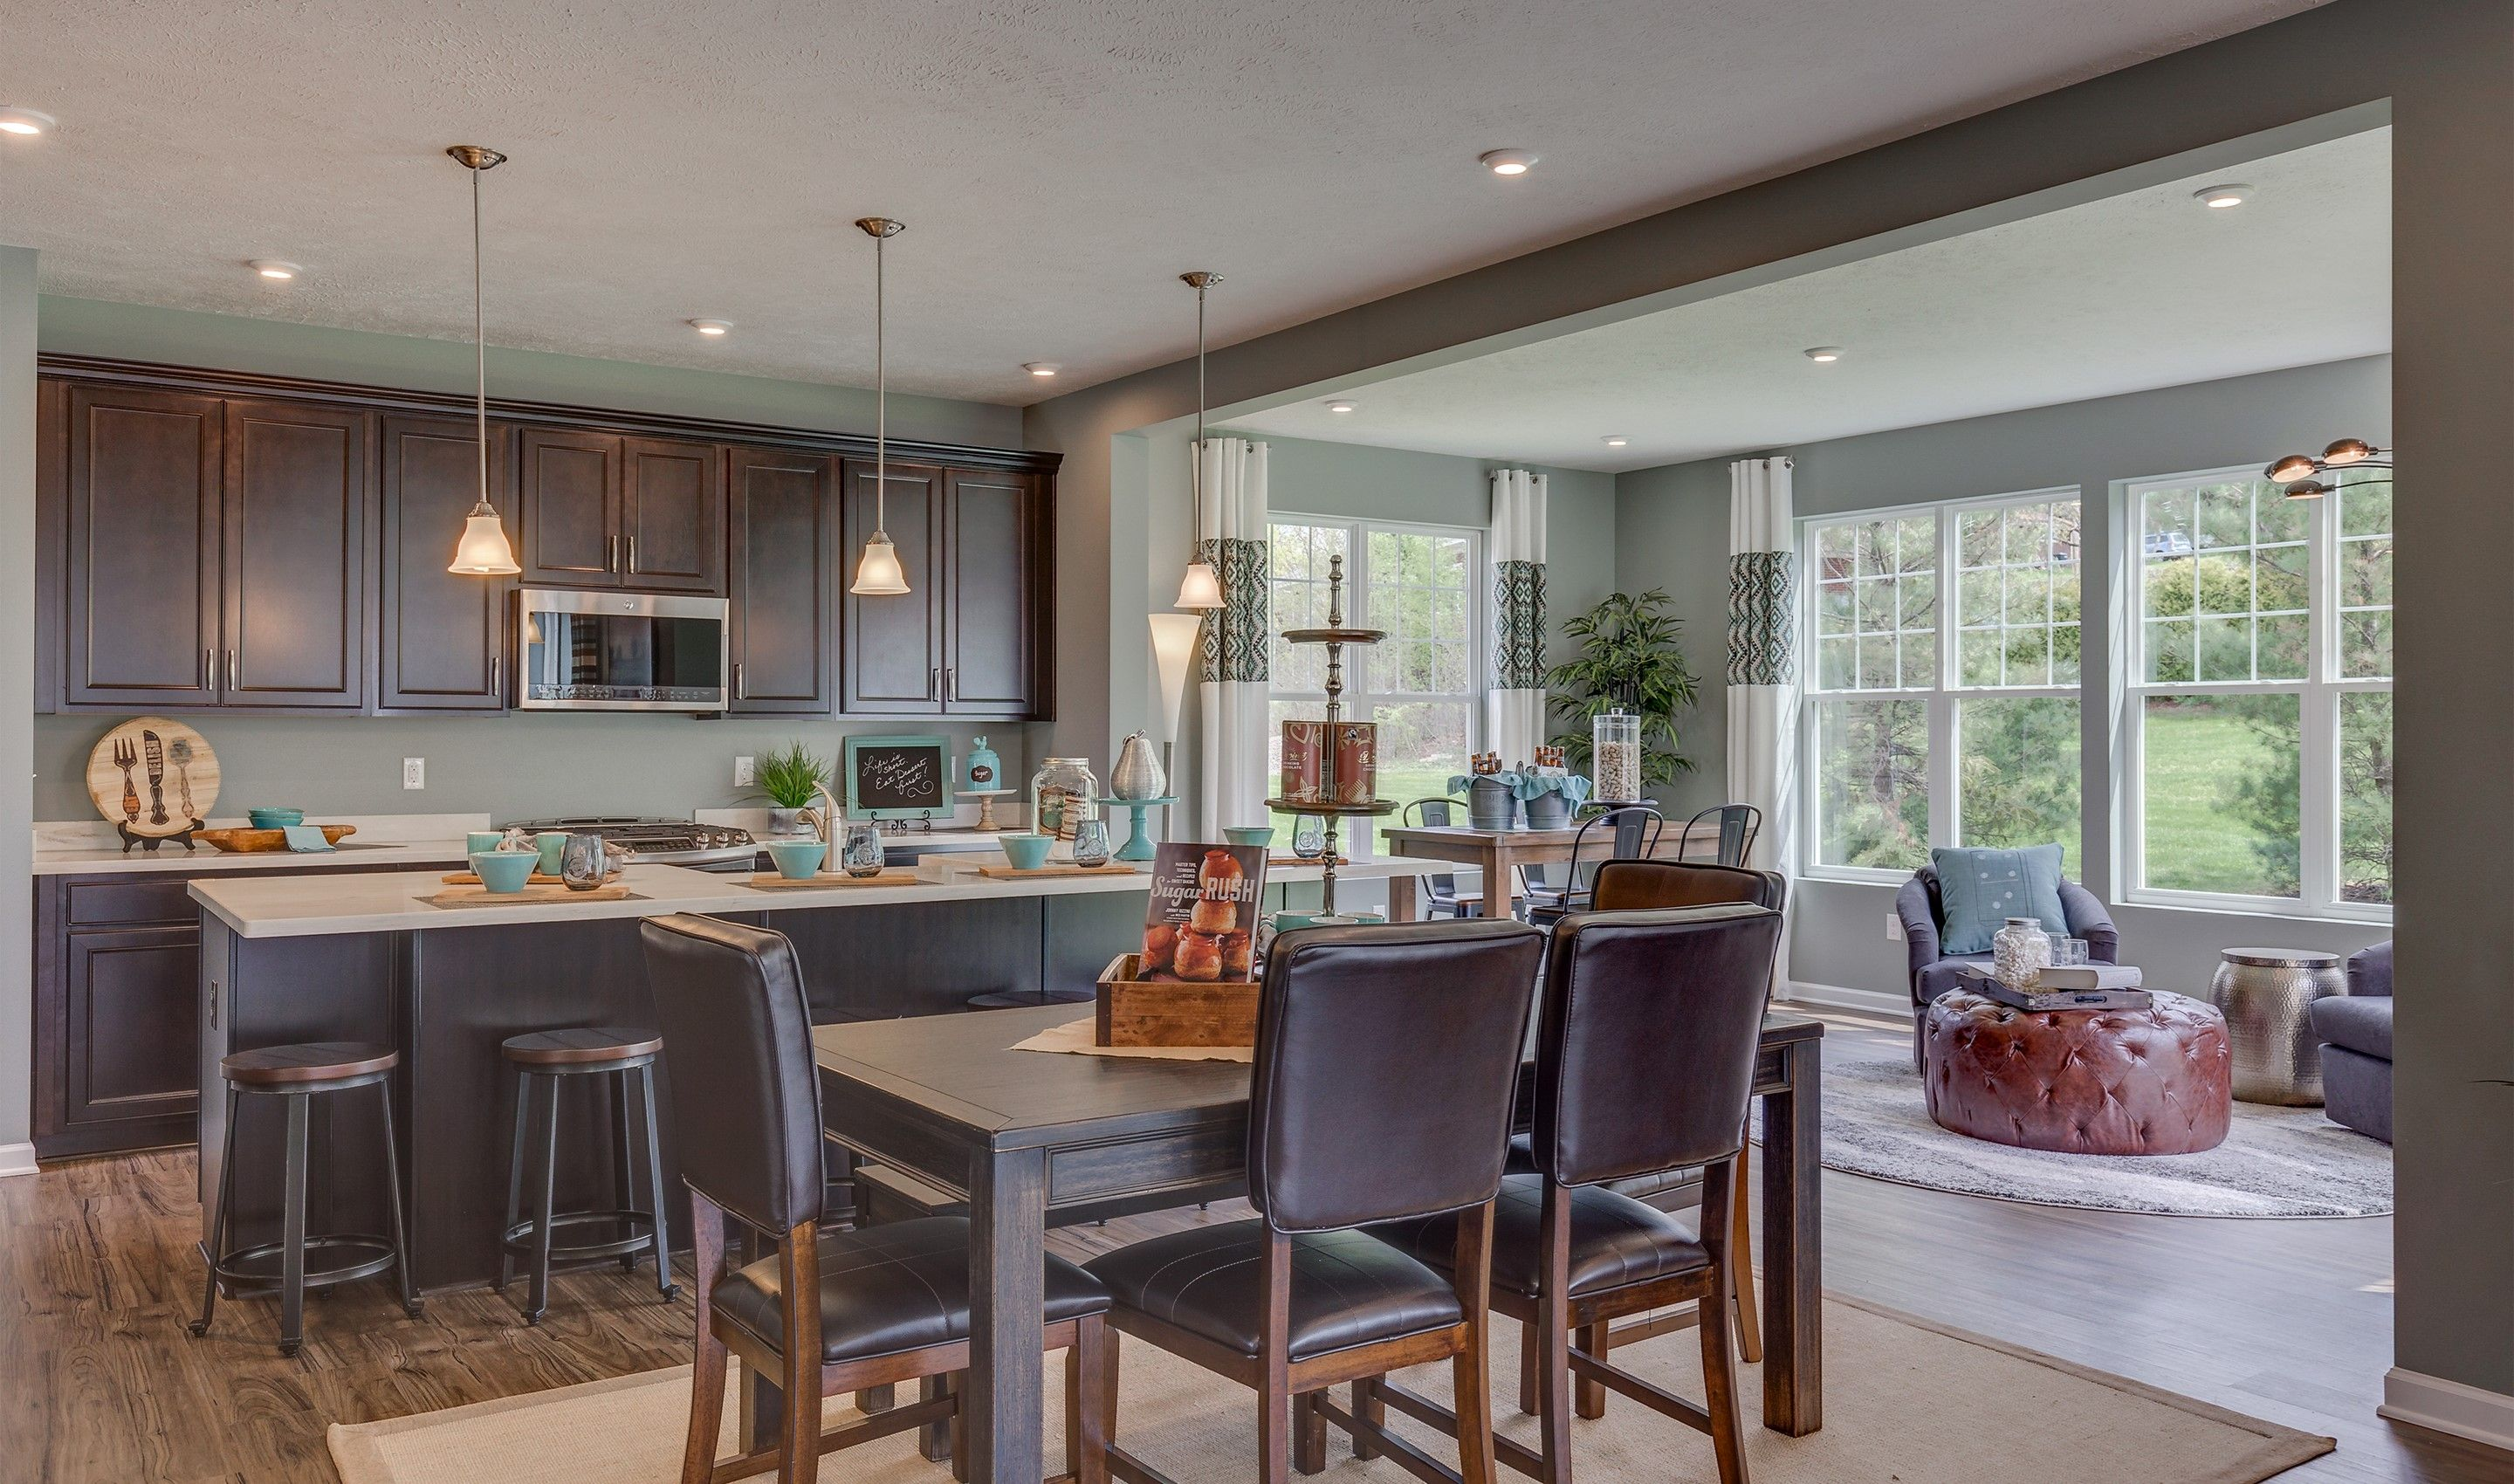 Kitchen featured in the Turner By K. Hovnanian® Homes - Build on Your Lot in Columbus, OH